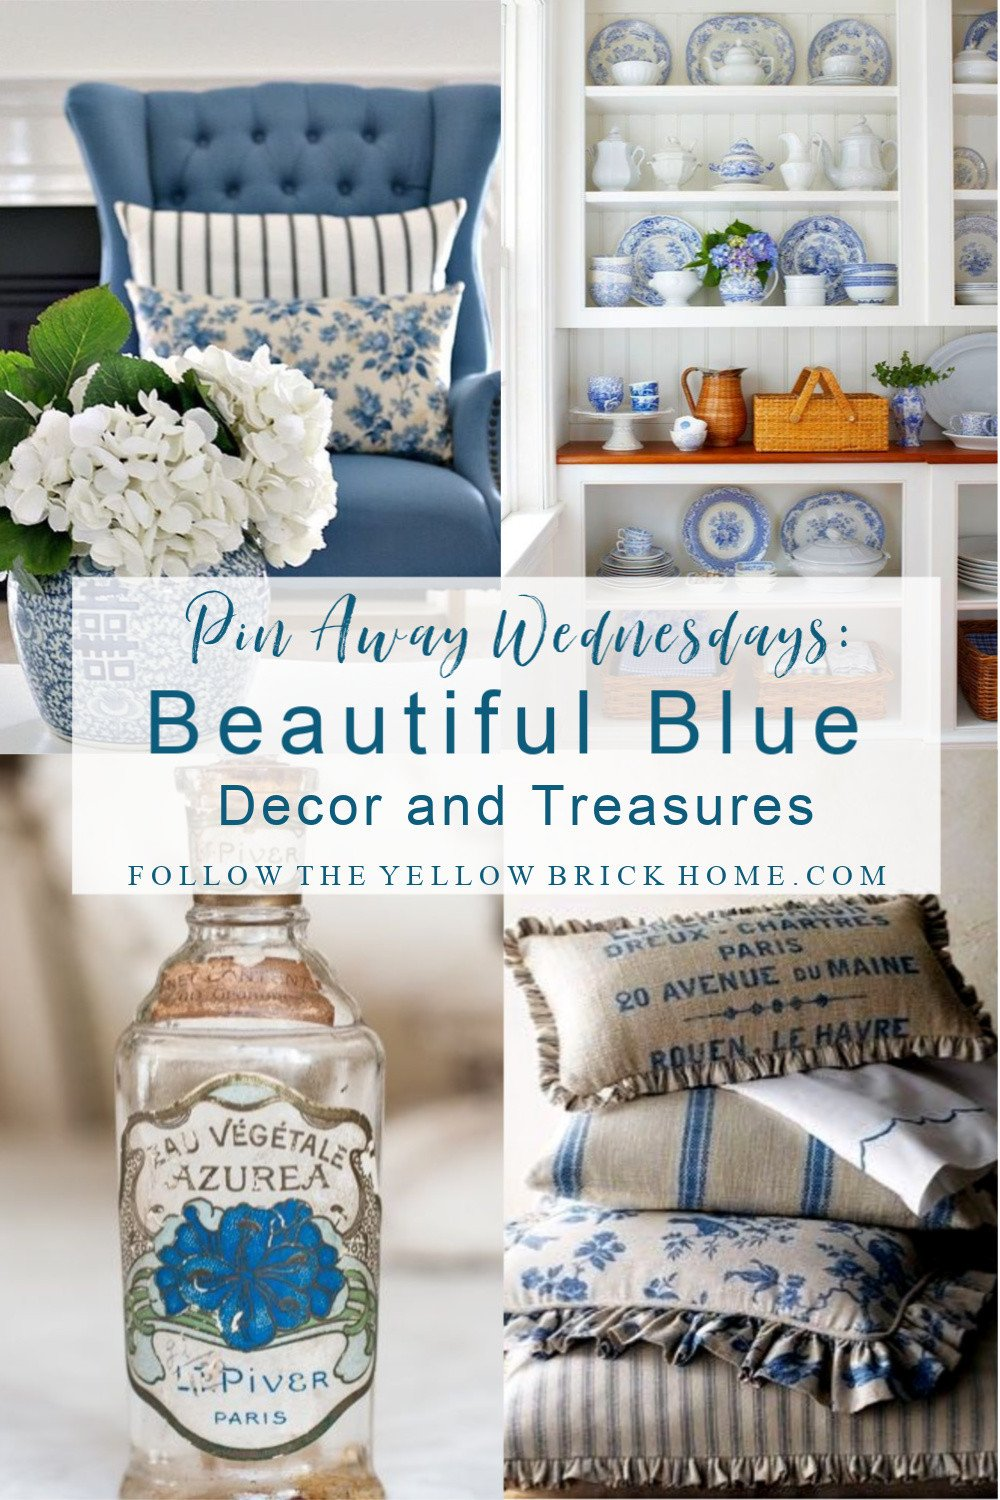 Blue and Tan Bedroom Elegant Follow the Yellow Brick Home Pin Away Wednesdays